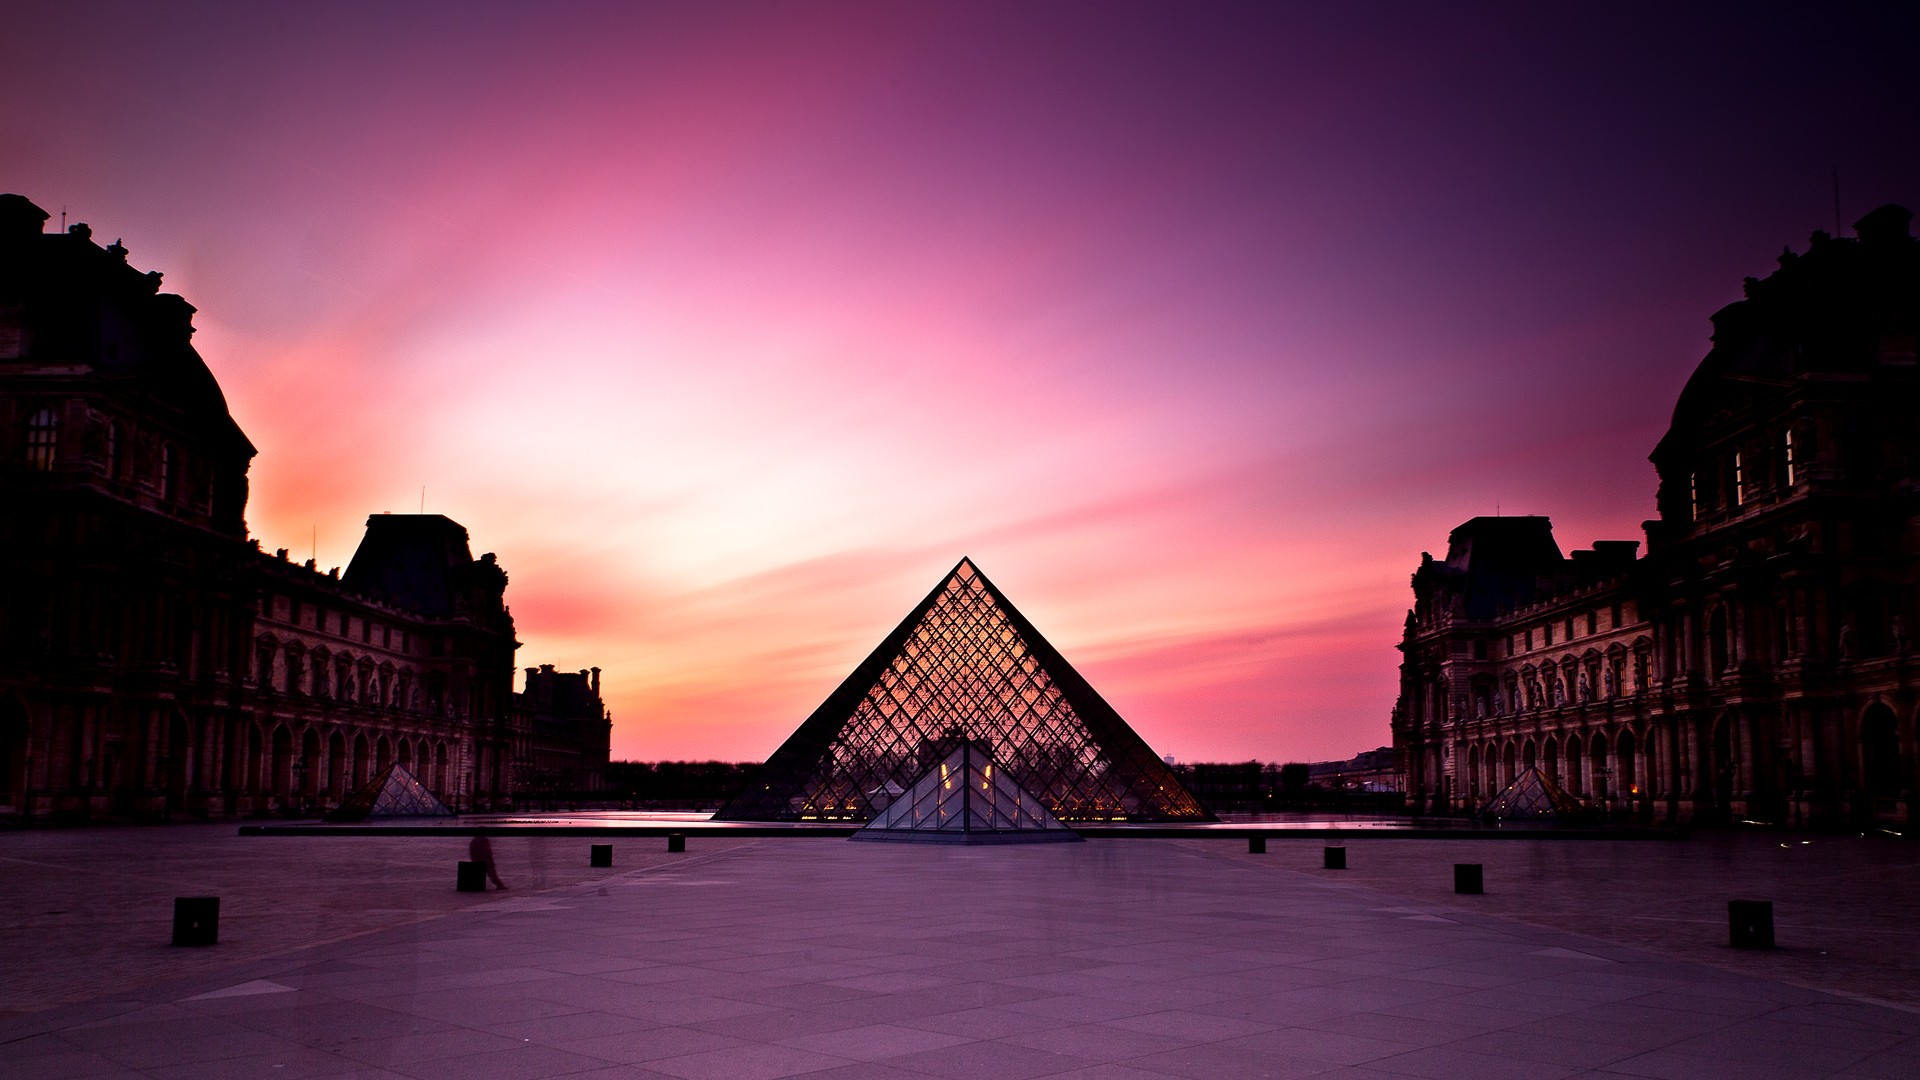 Paris Wallpaper Cute For Iphone Louvre Museum At Sunset Wallpapers Hd Wallpapers Id 10196